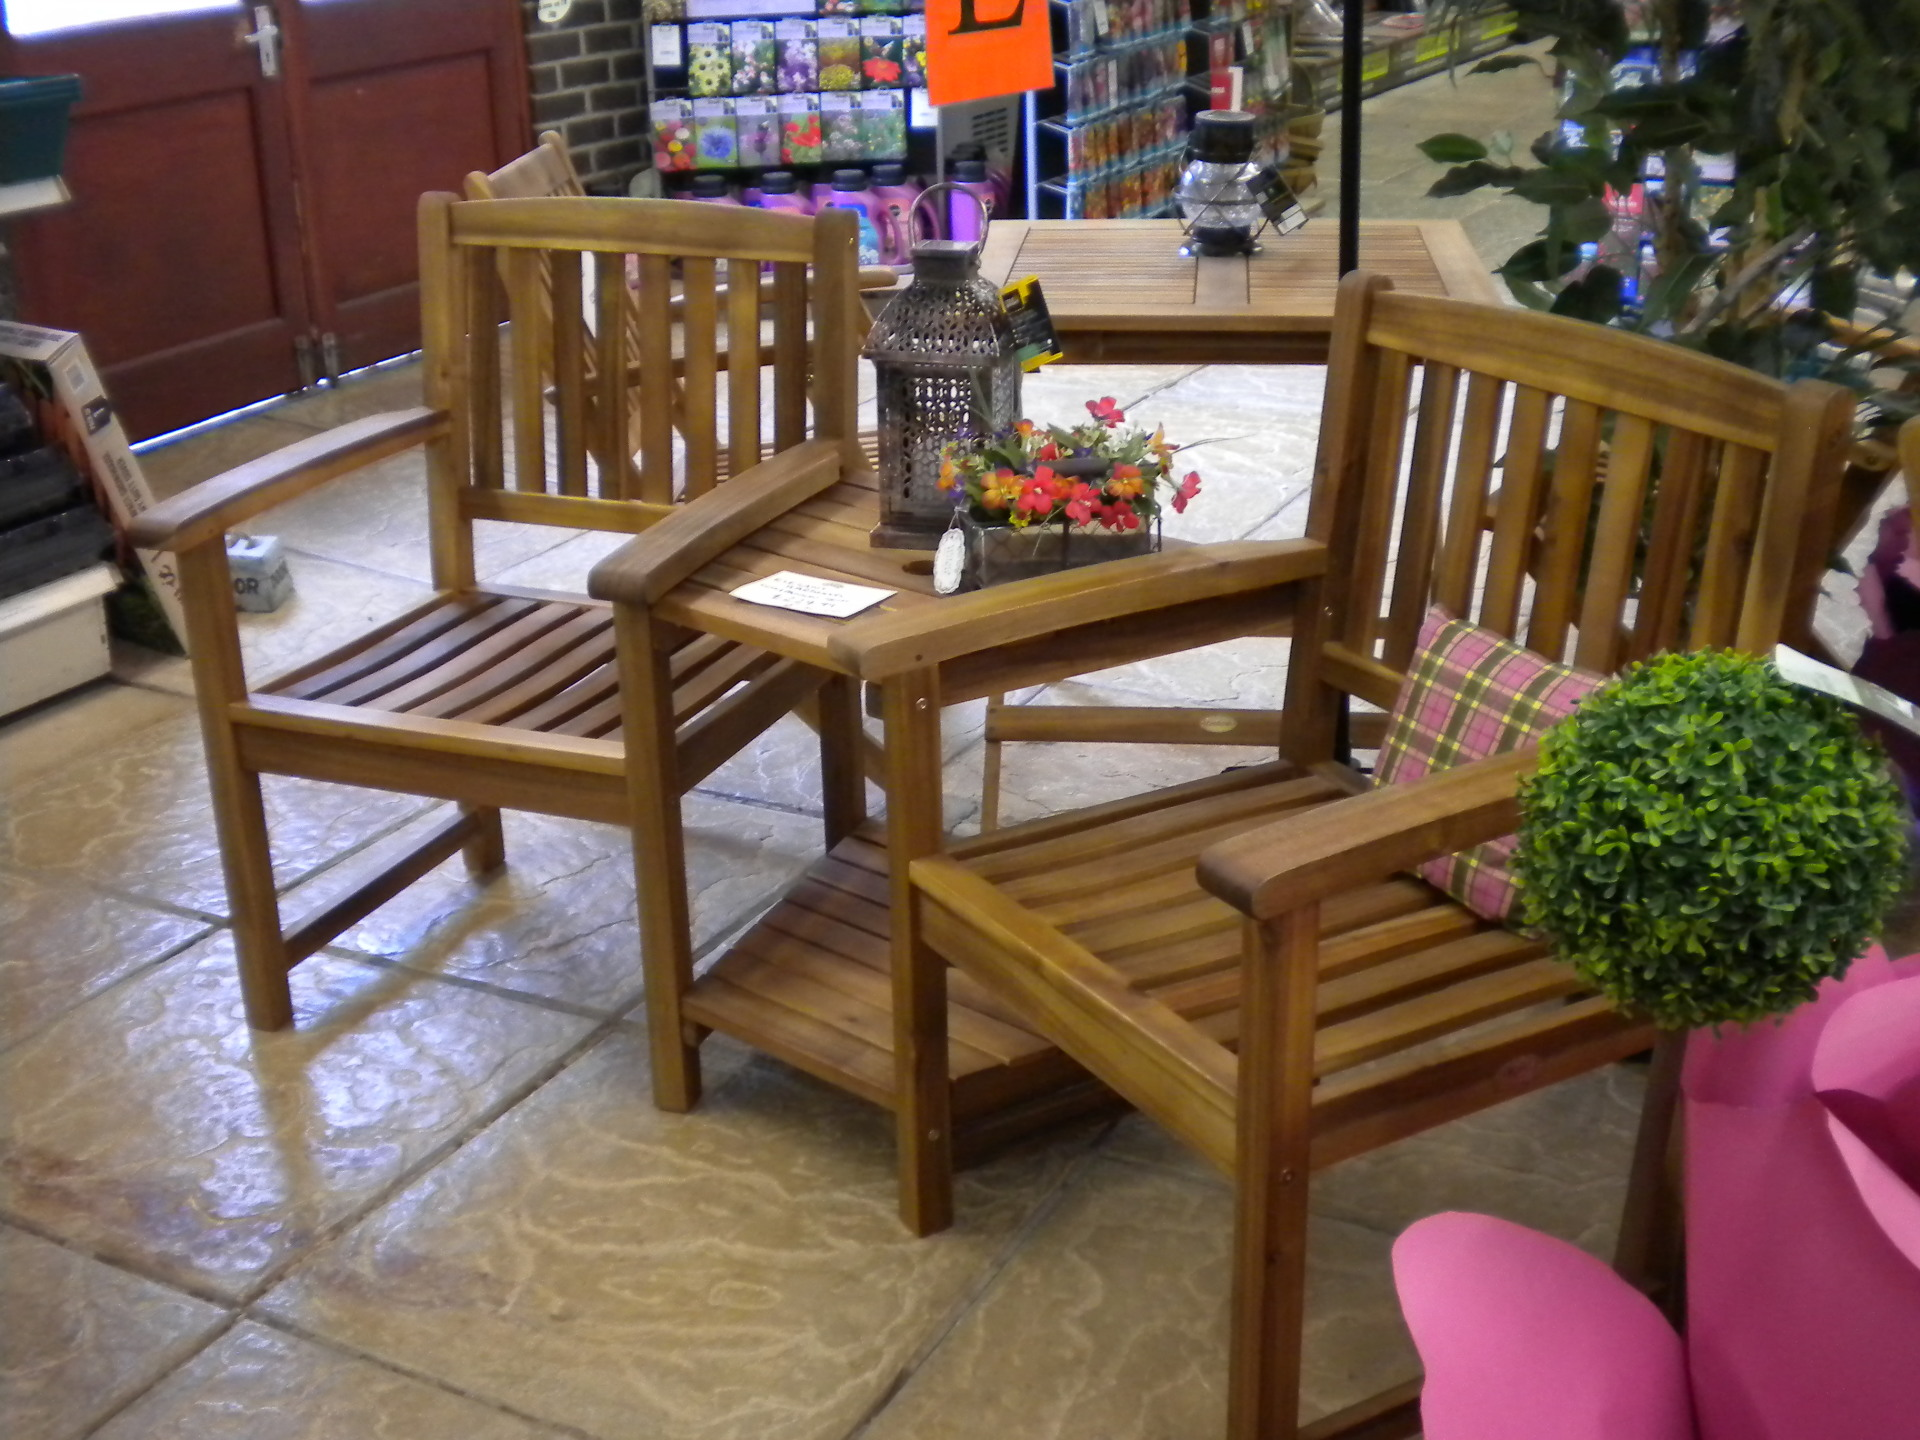 Hardwood Companion Seat was £229.99 - now £180